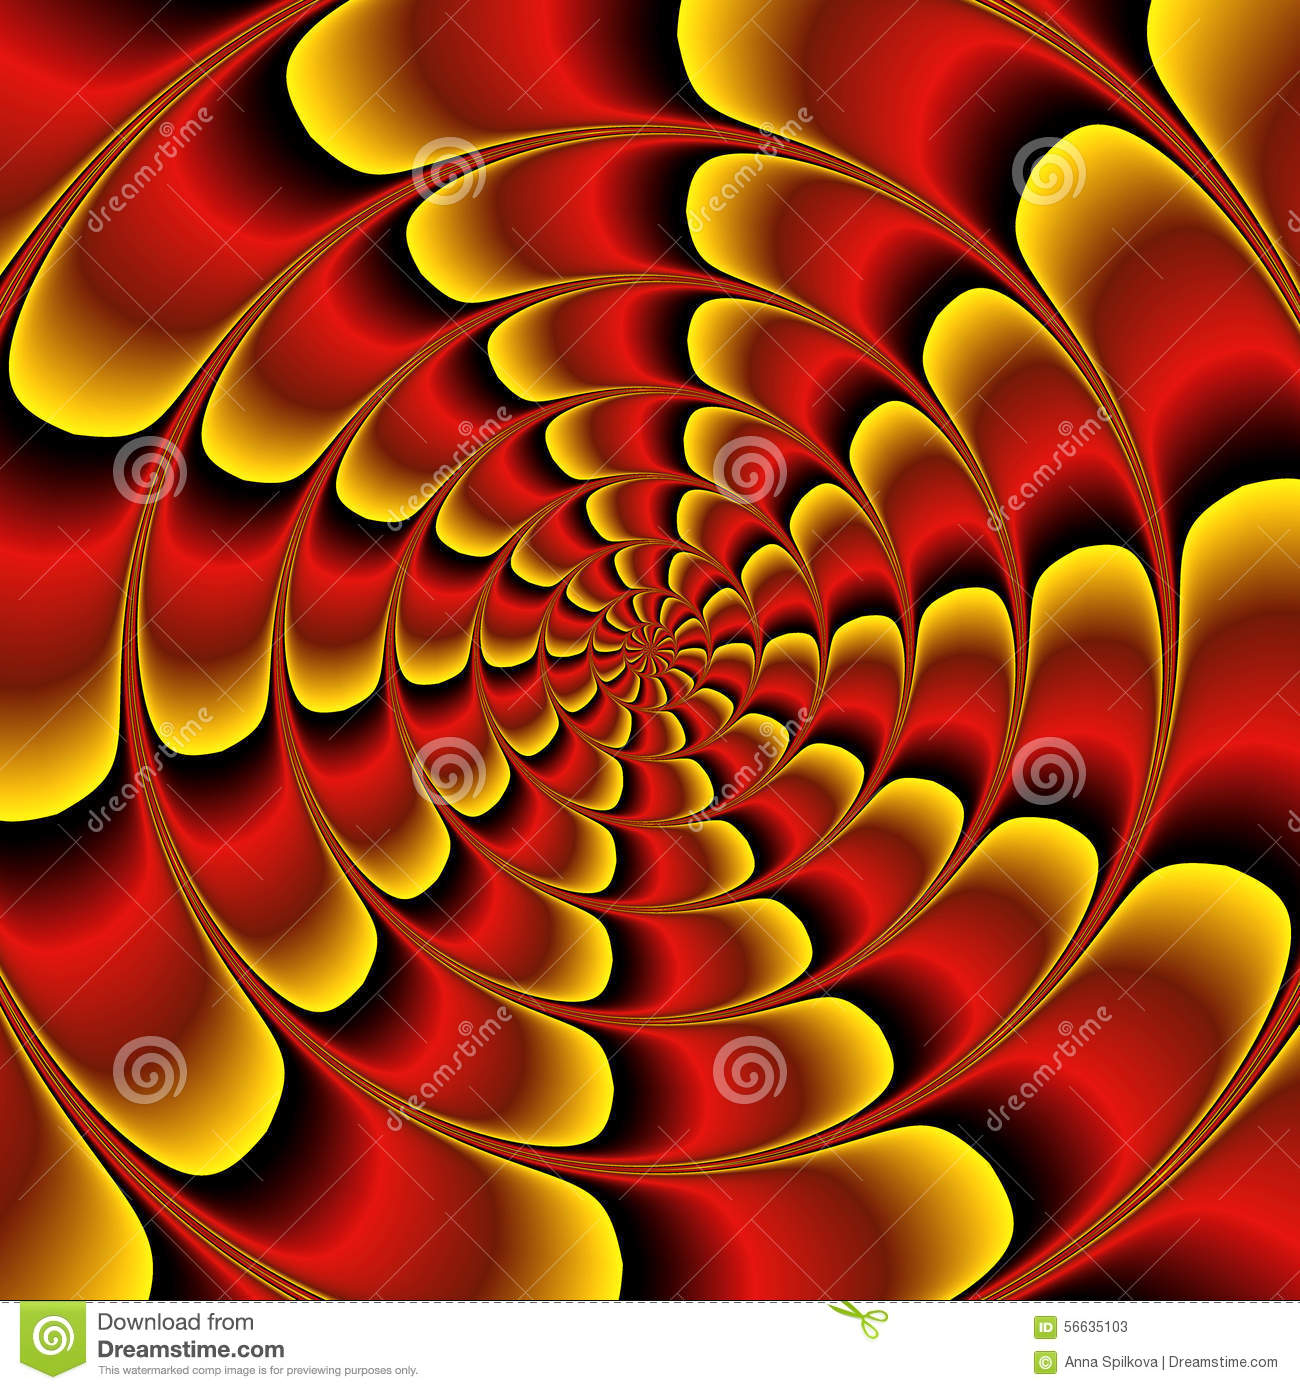 Abstract Red, Black And Gold Background With Rippling